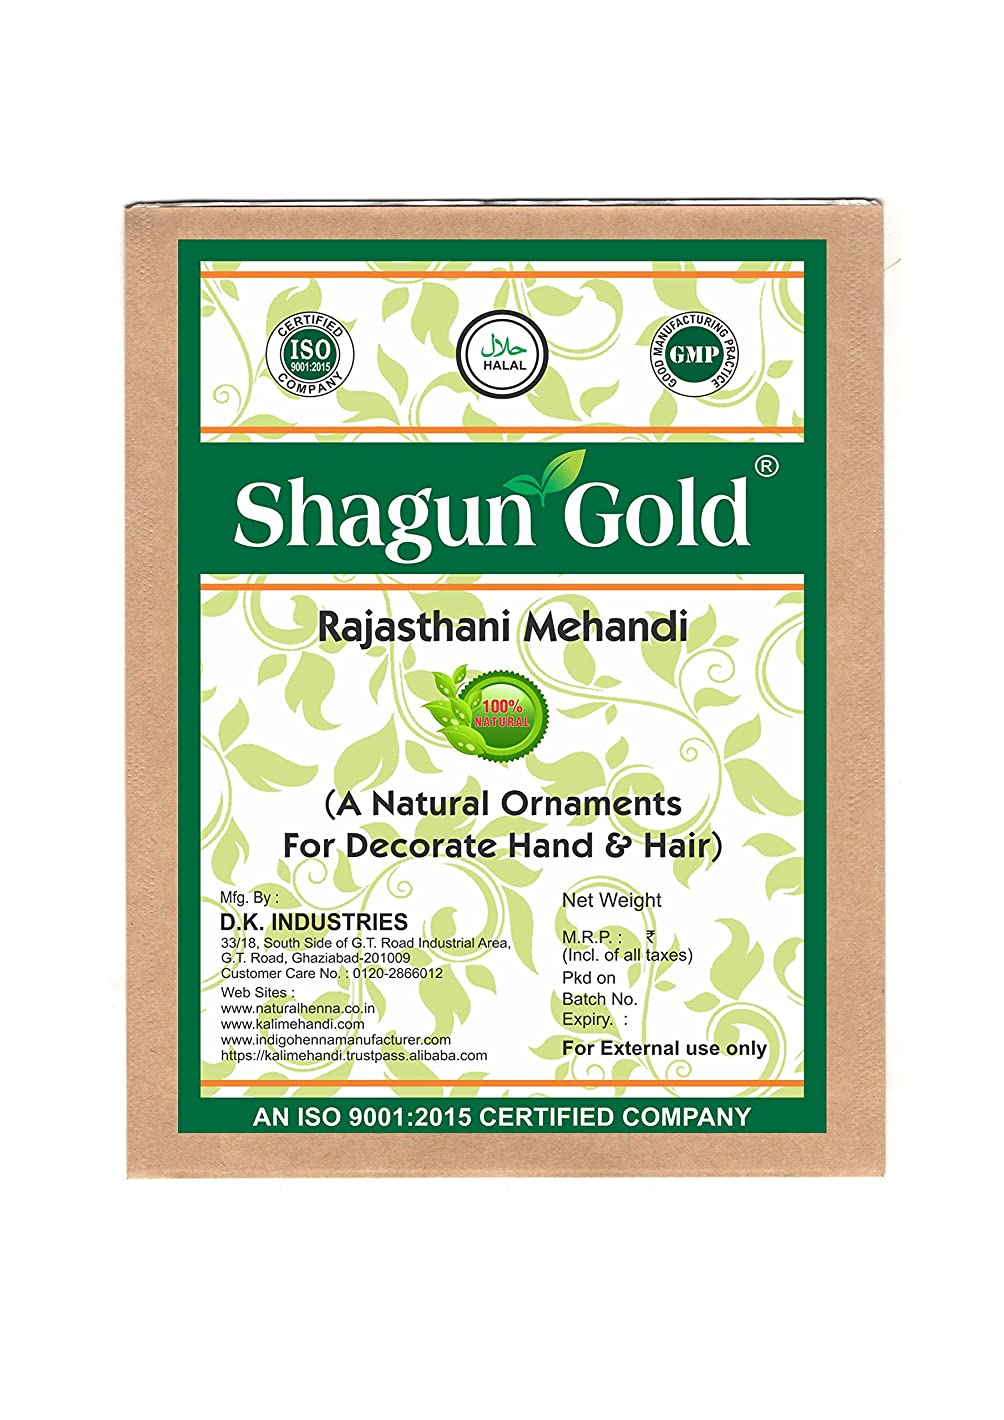 効率的異常真似るShagun Gold A 100% Natural ( A Natgural Ornaments ) Natural Rajasthani Mehandi For Hair Certified By Gmp / Halal / ISO-9001-2015 No Ammonia, No PPD, Chemical Free 7 Oz / ( 1 / 2 lb ) / 200g